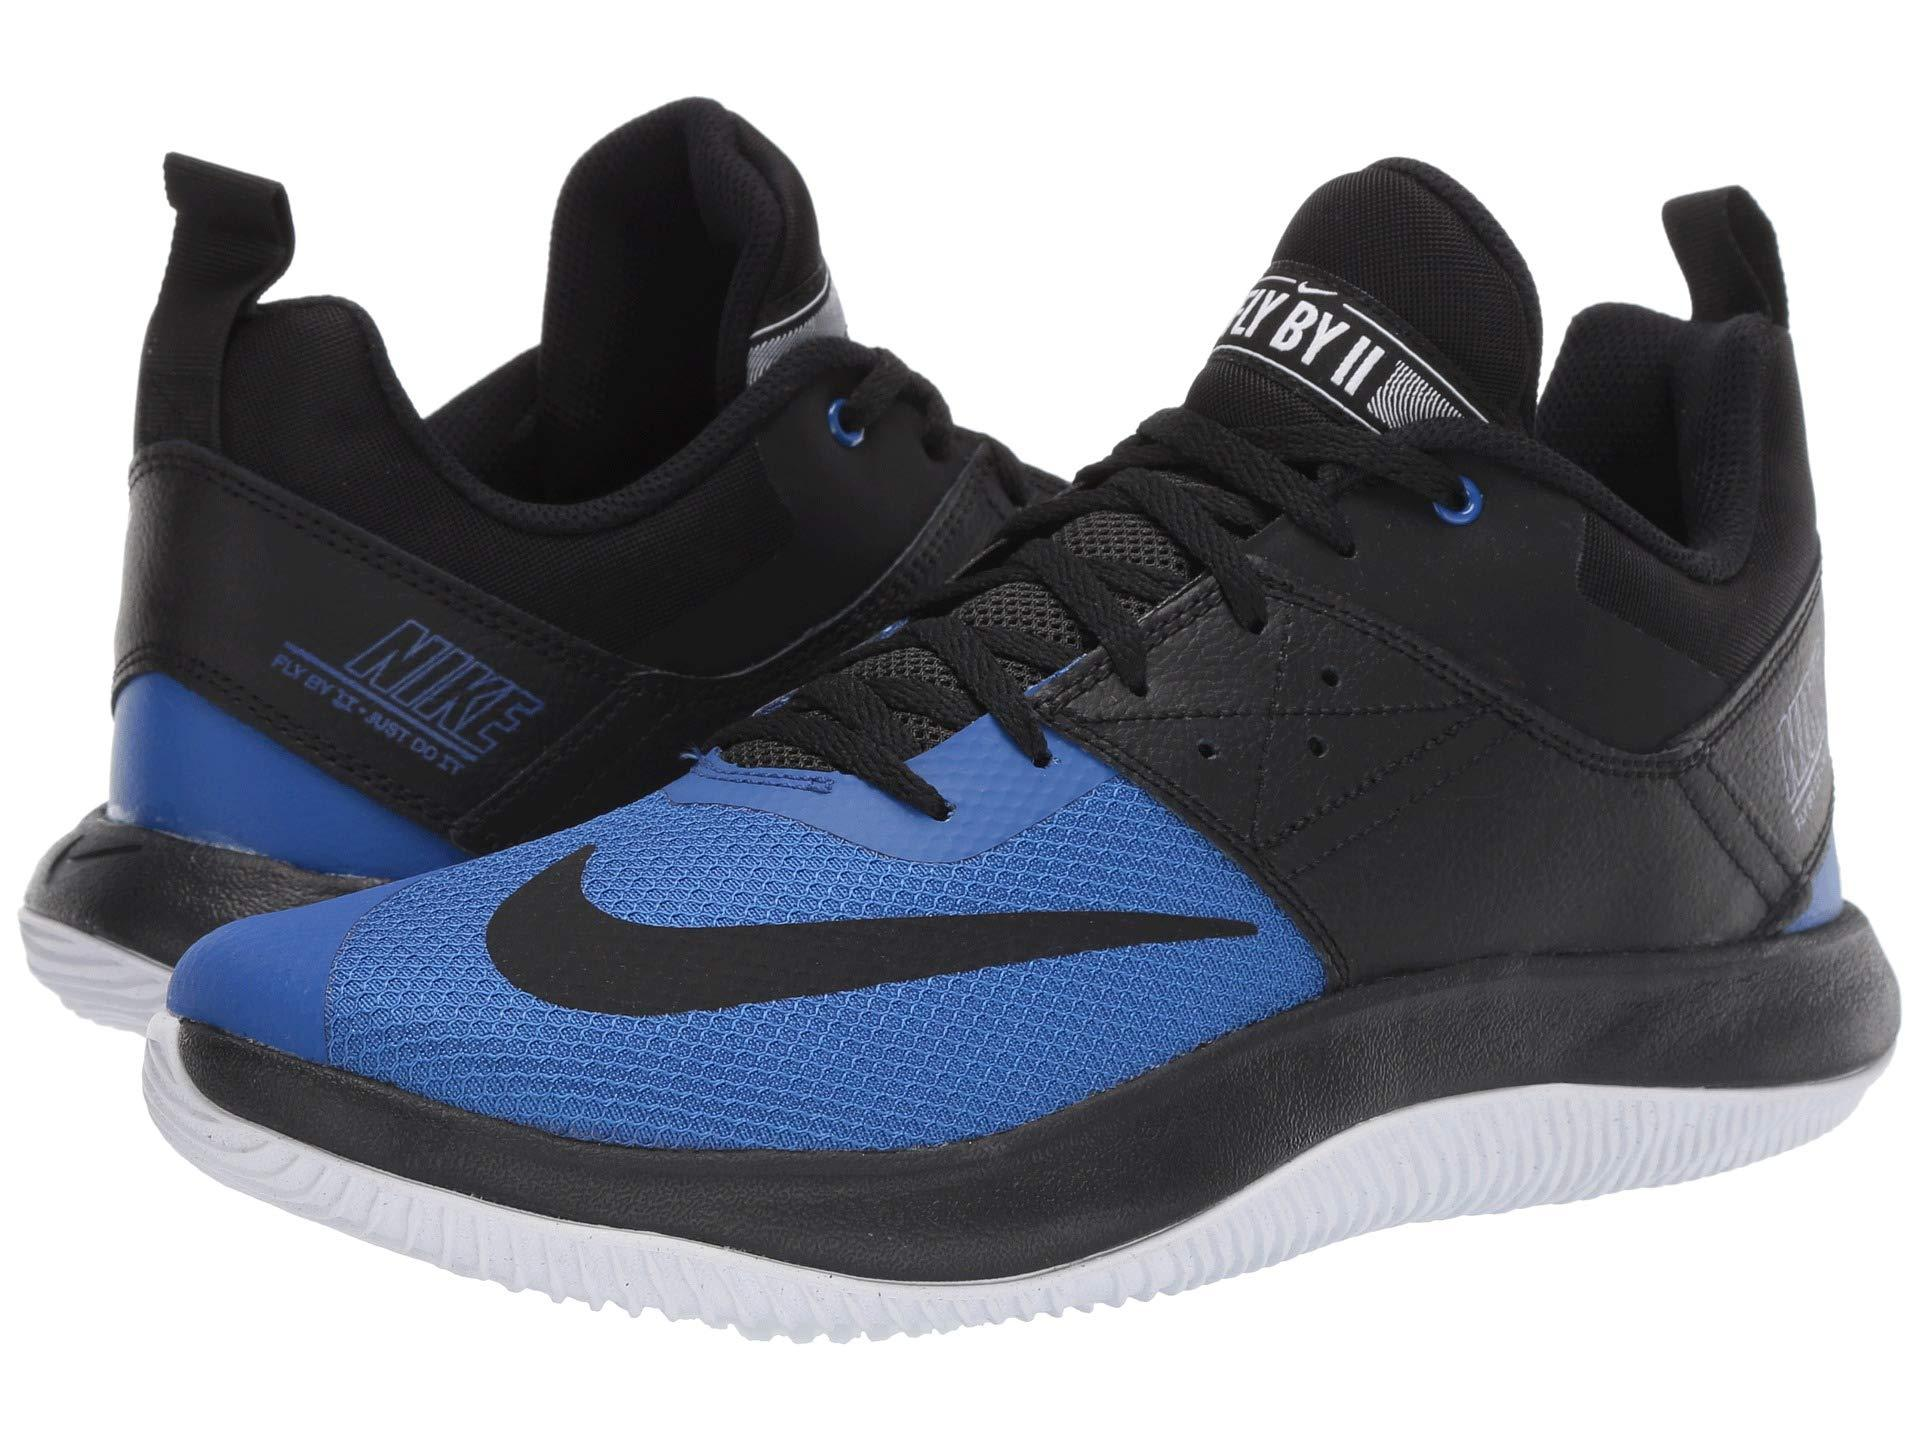 932fb83fe5c3 Lyst - Nike Fly.by Low Ii (black black game Royal white) Men s ...